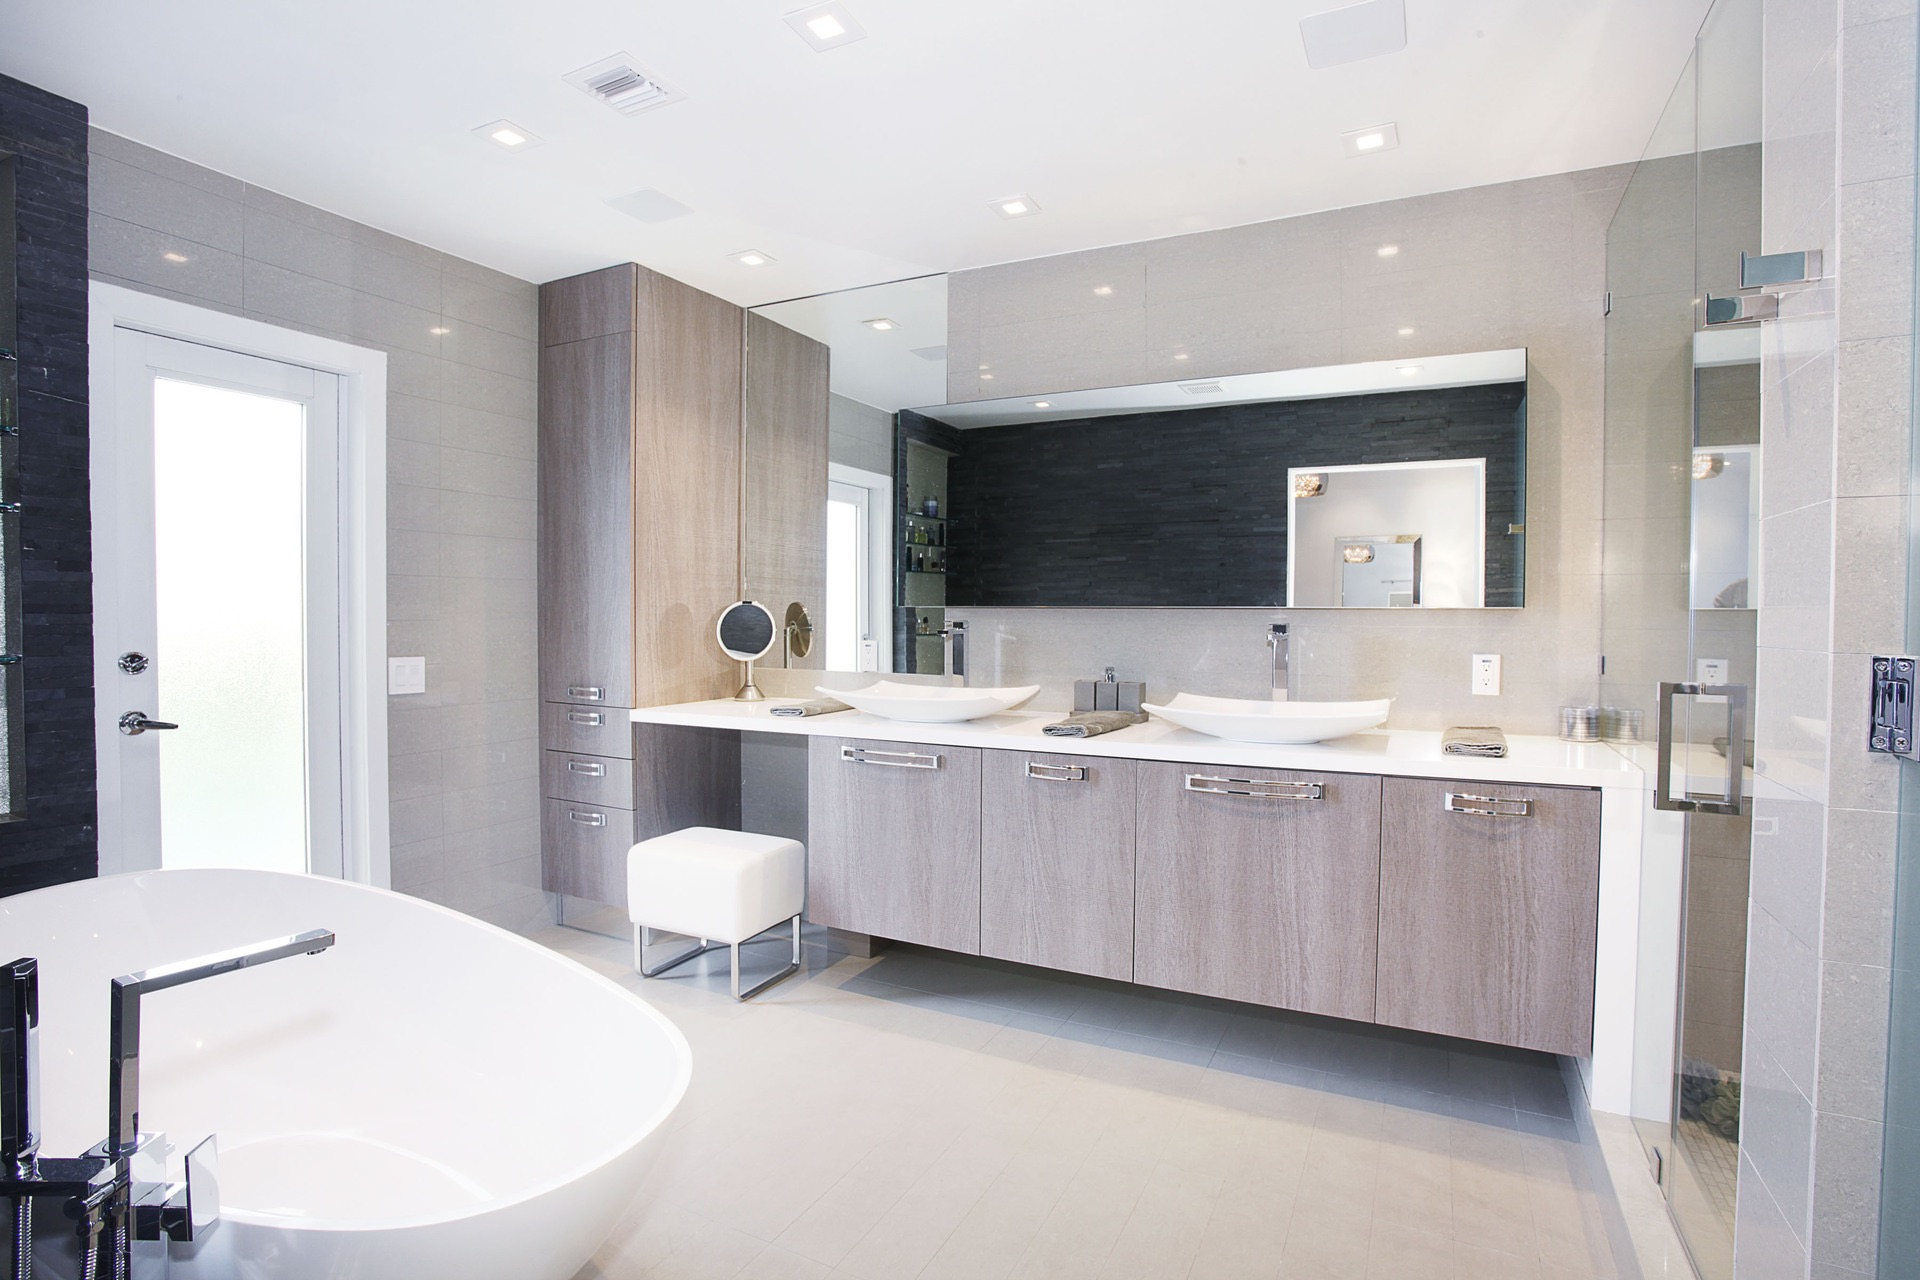 Modern Double Sink Bathroom Furniture With Whitewashed Cabinets (View 10 of 18)